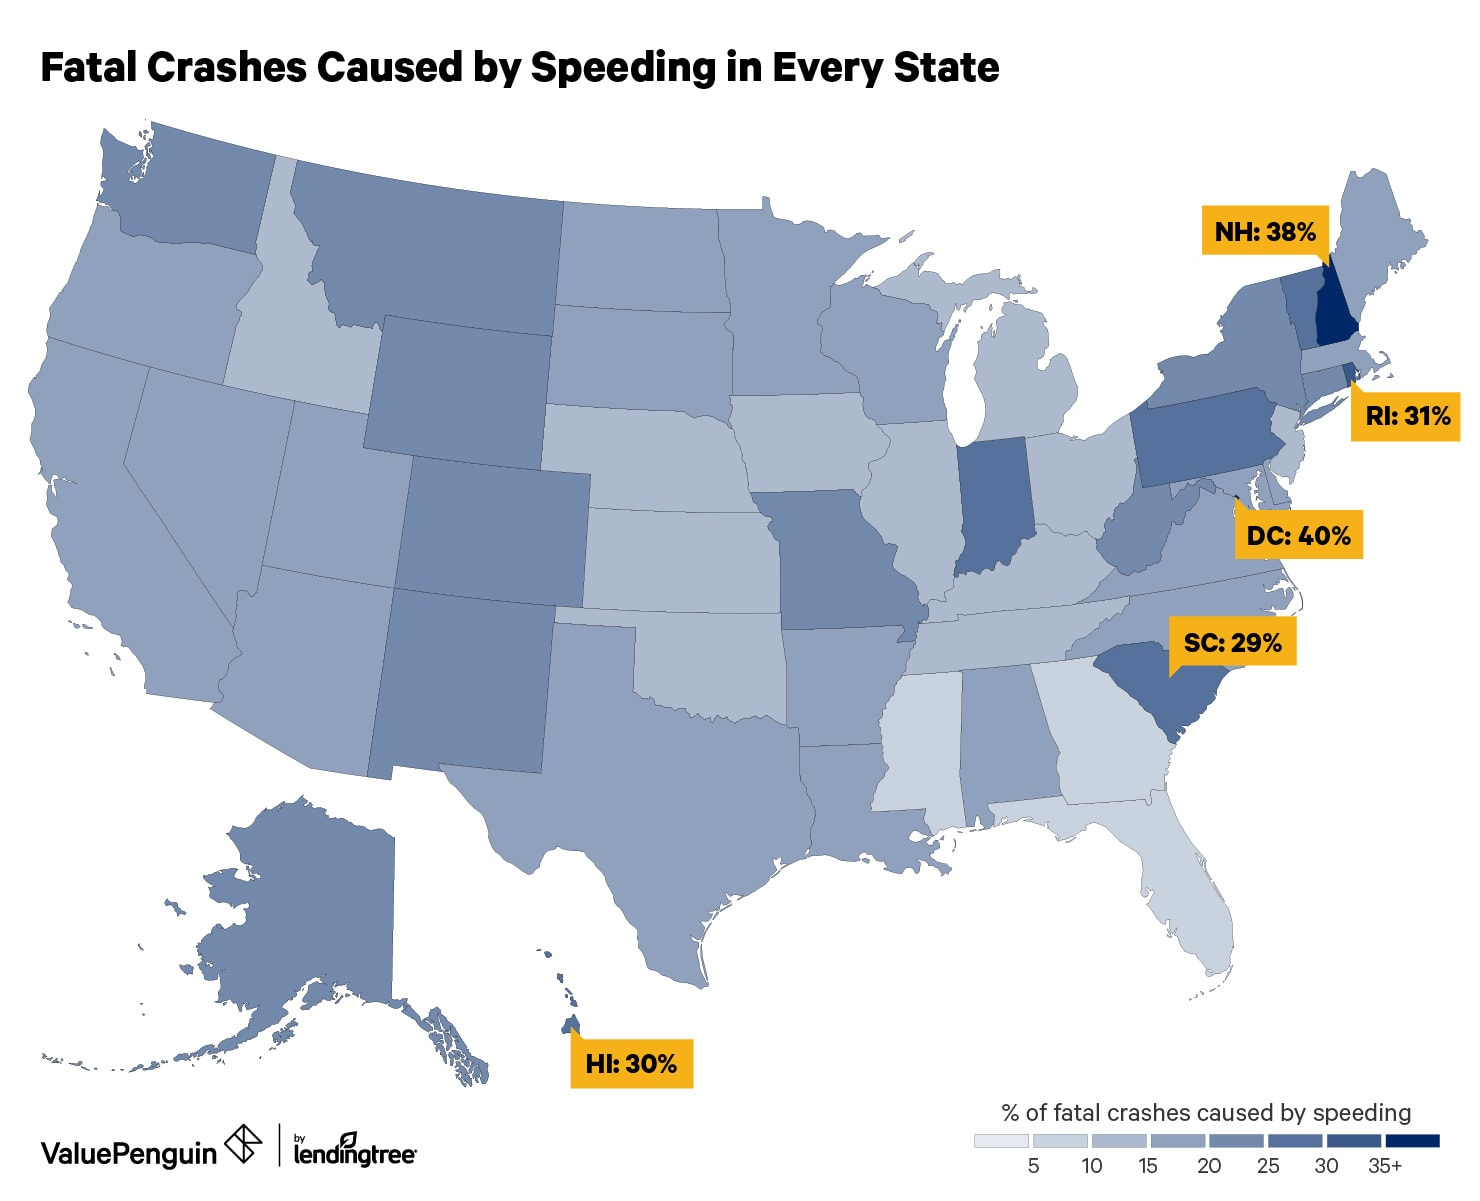 Speeding is the leading cause of fatal car crashes in the